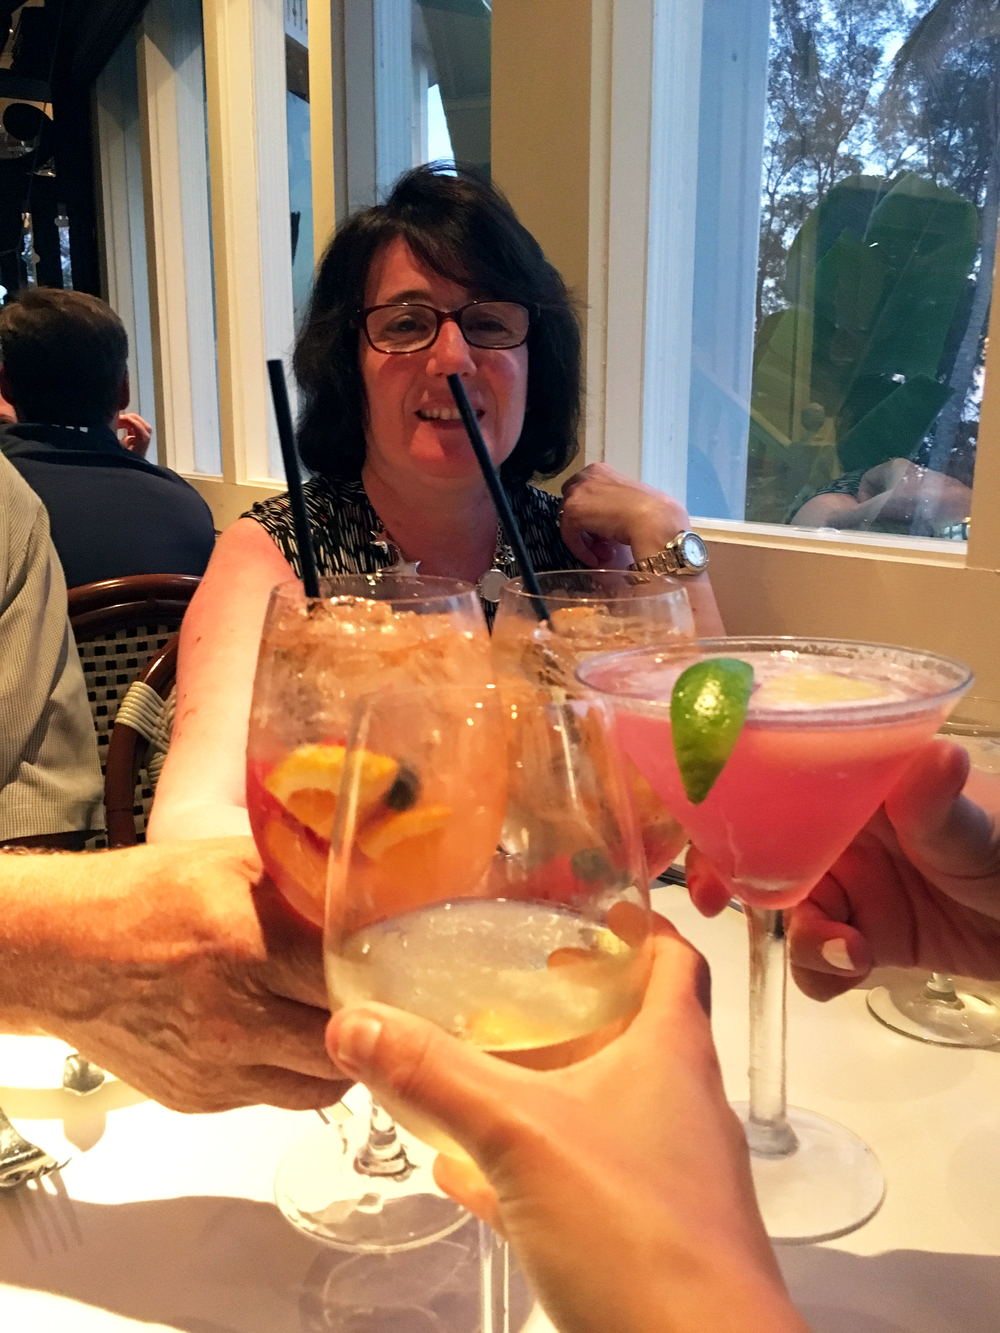 My mom requested that we take photos of us clinking our drinks at almost every meal.